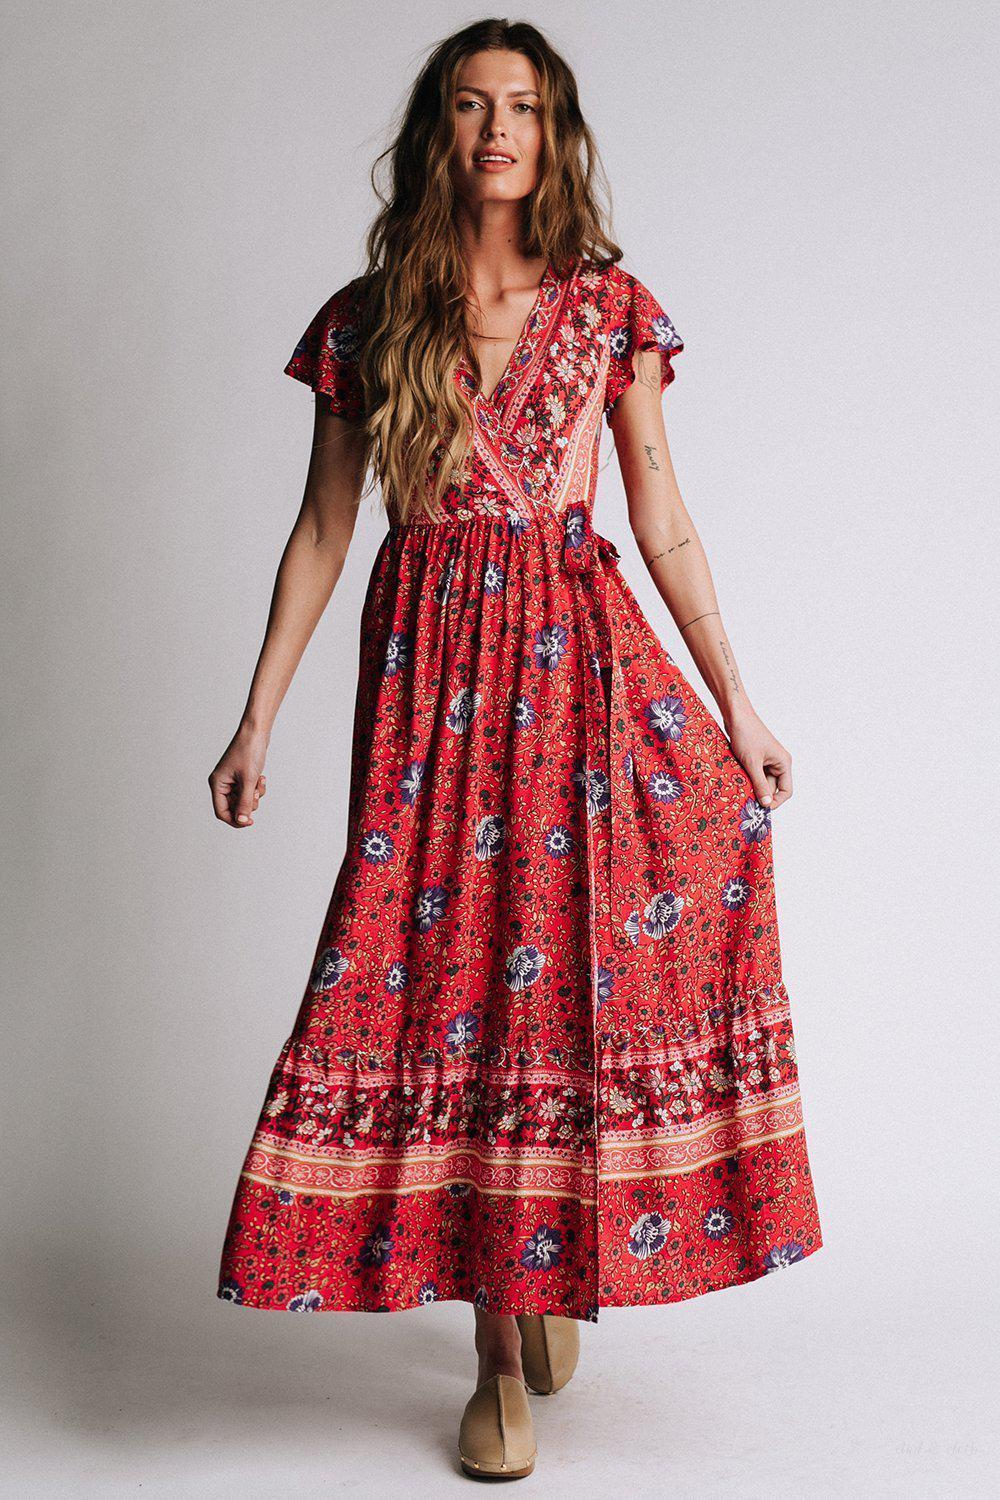 Milan Dress in Red, cladandcloth, n/a.